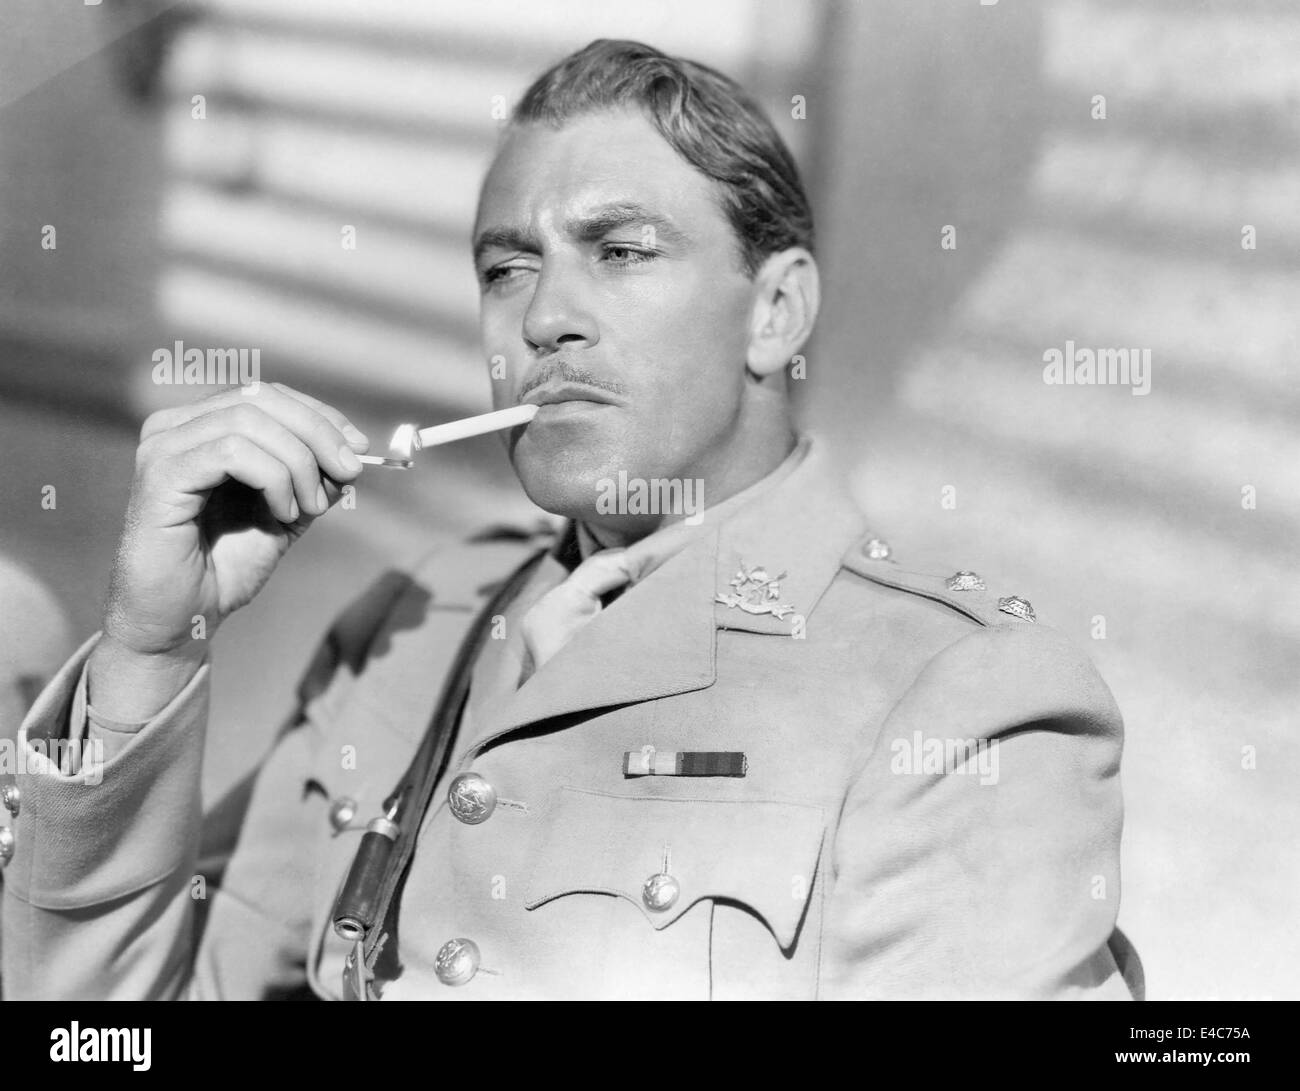 Gary Cooper, on-set of the Film, 'Lives of a Bengal Lancer', 1935 - Stock Image